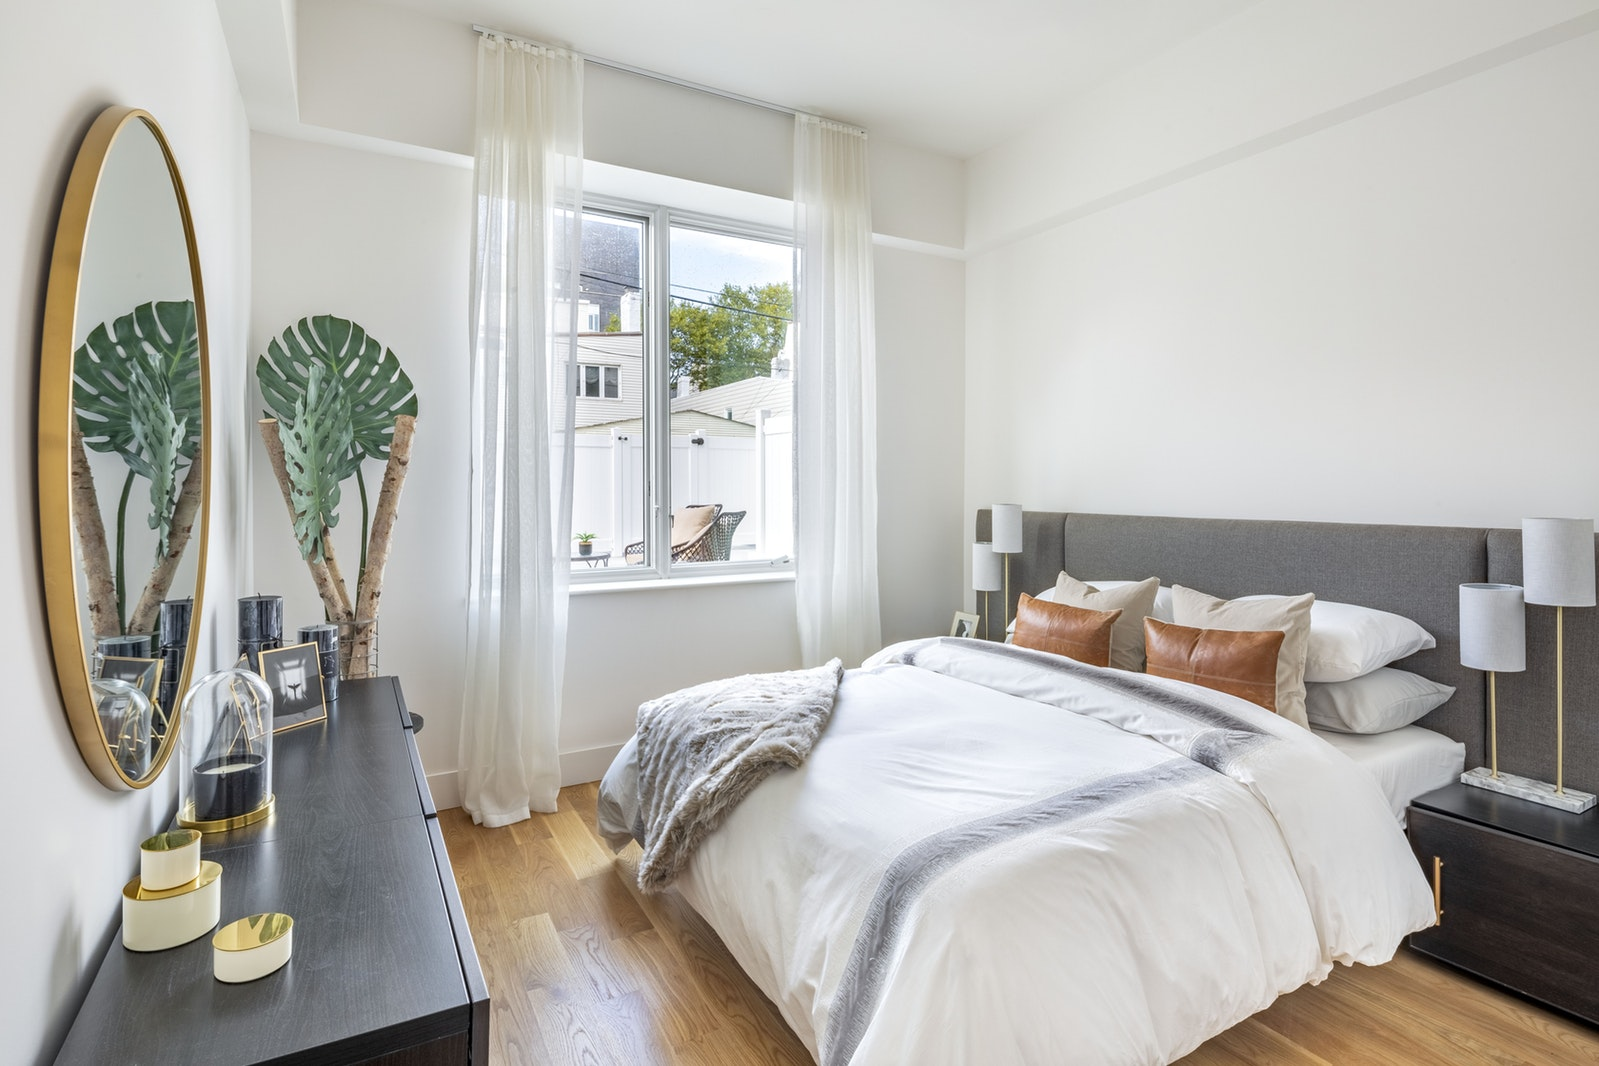 21 Powers Street 1c, Williamsburg, Brooklyn, NY, 11217, $1,350,000, Property For Sale, Halstead Real Estate, Photo 5